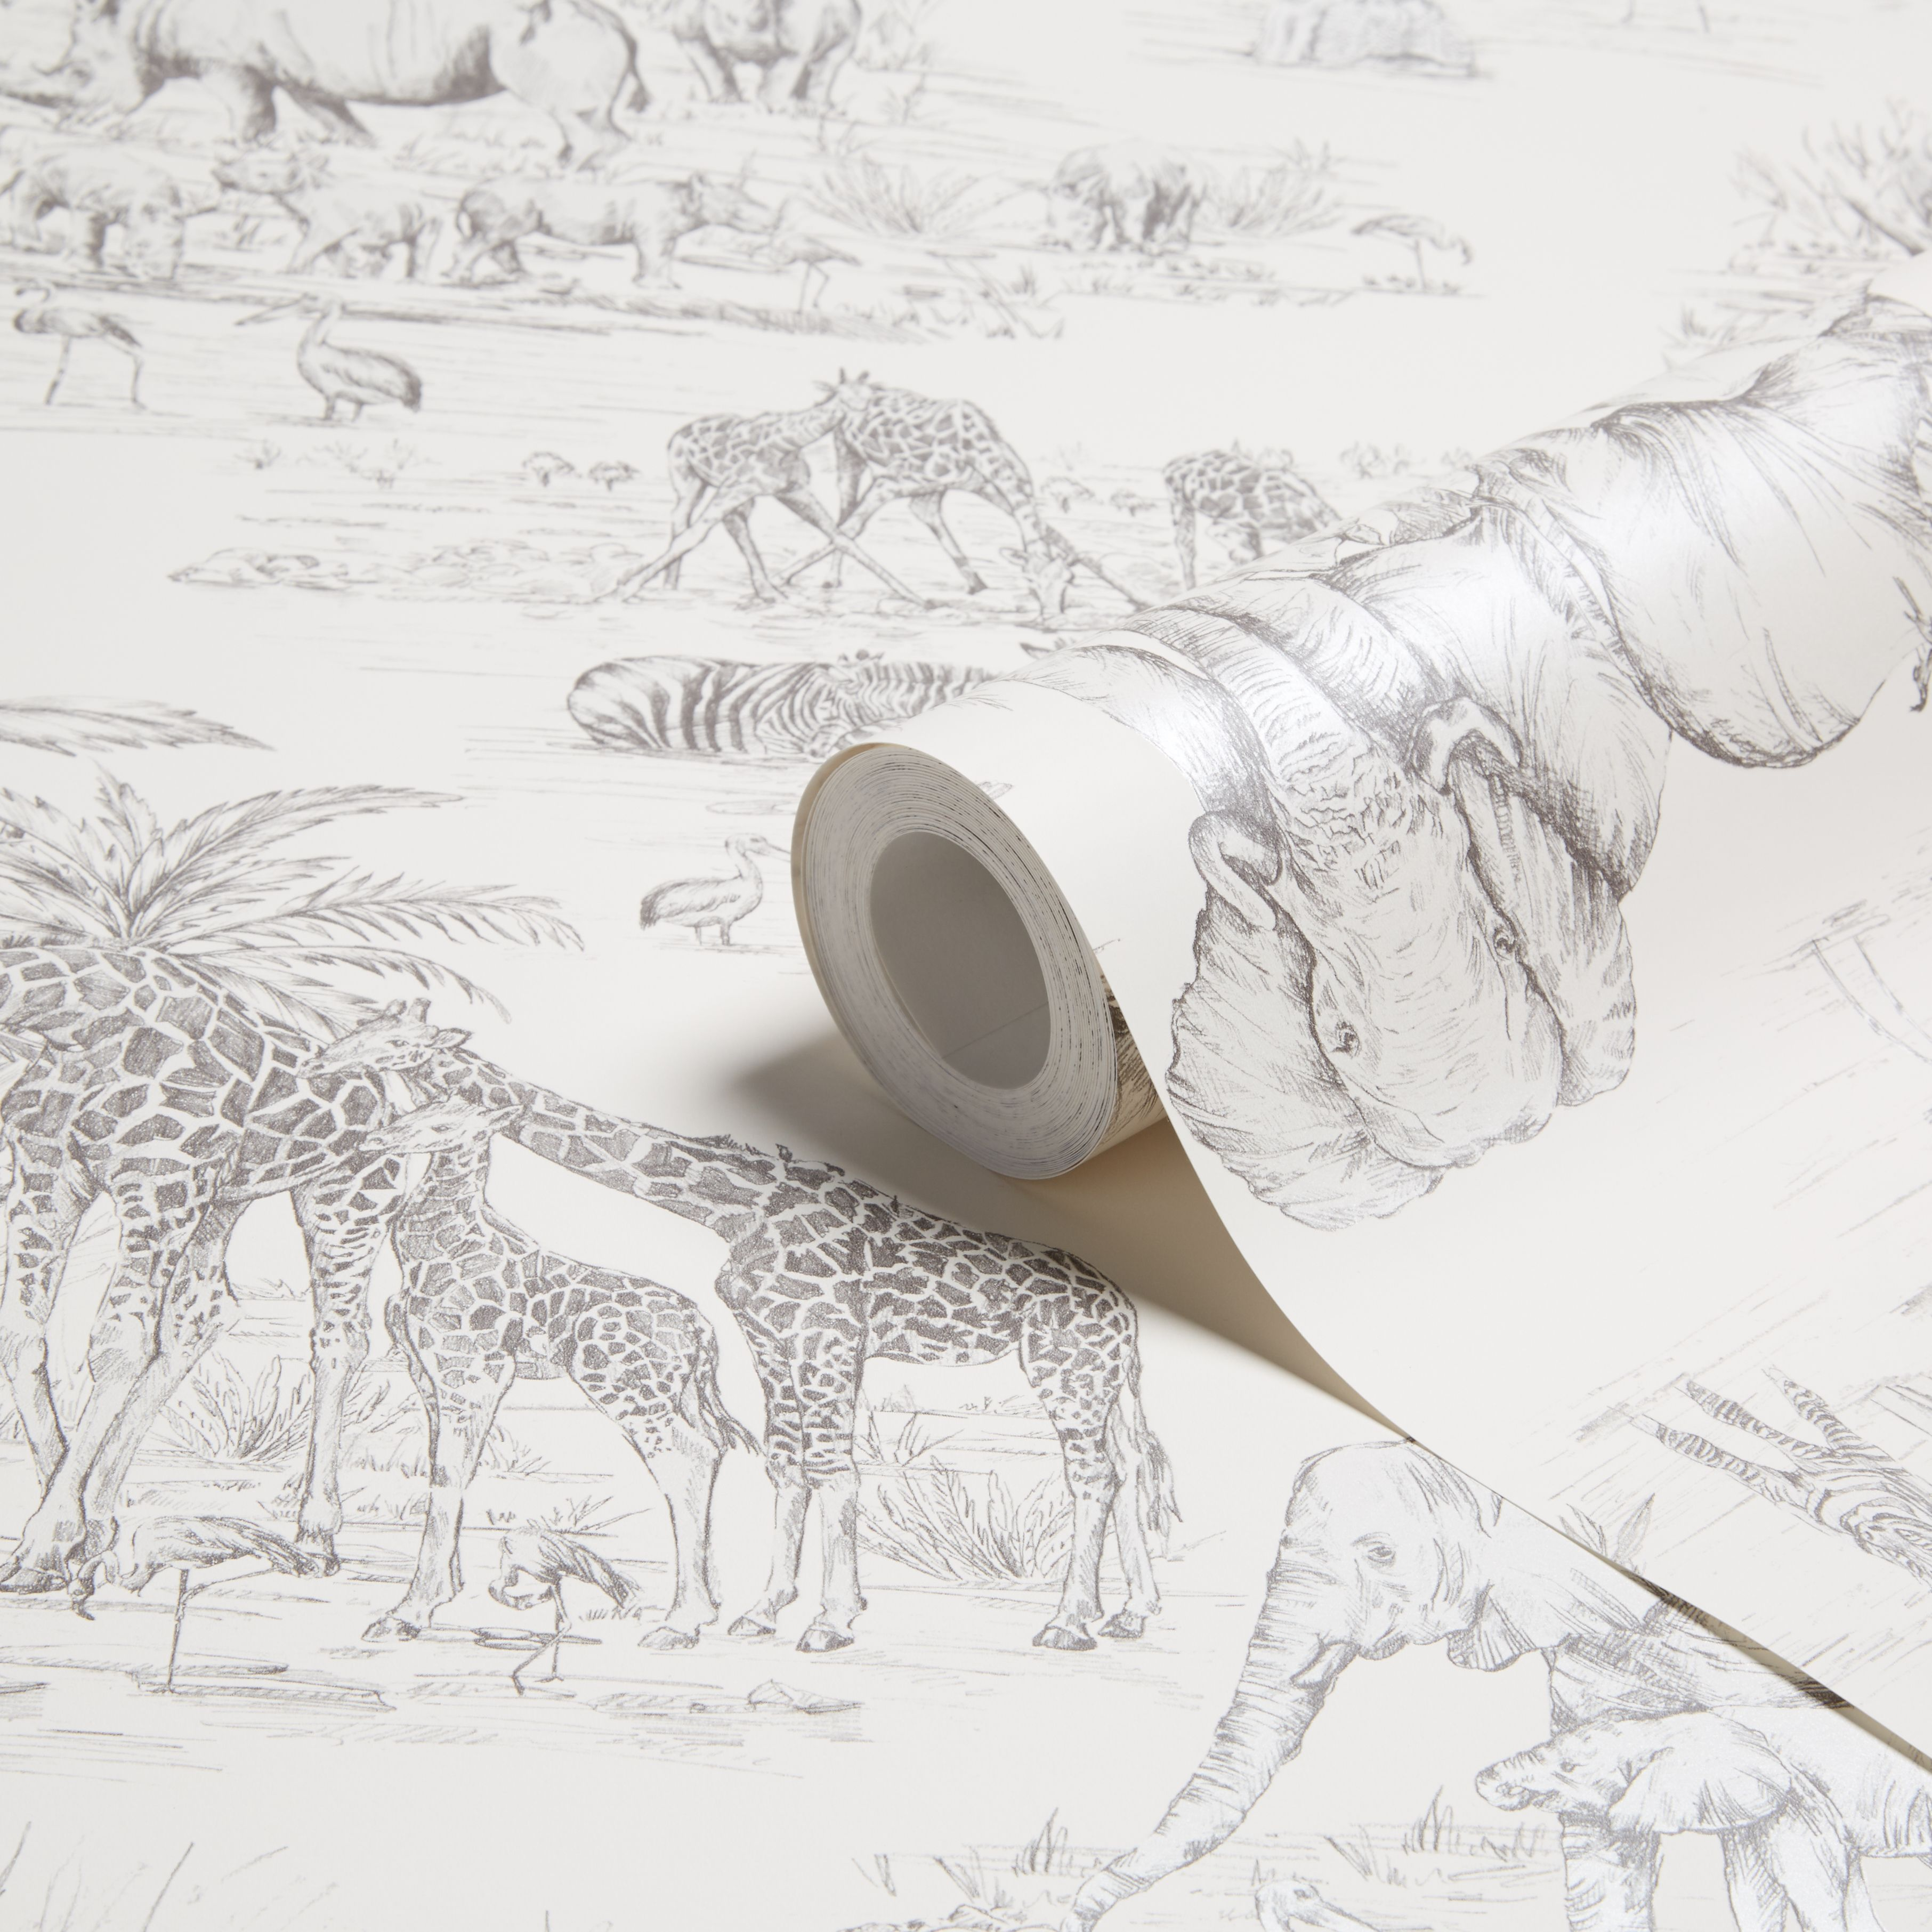 Colours Watering Hole Cream Animal Safari Metallic Wallpaper B Q For All Your Home And Garden Supplies And Safari Room Kids Bedroom Wallpaper Safari Bedroom Childrens bedroom wallpaper b&q